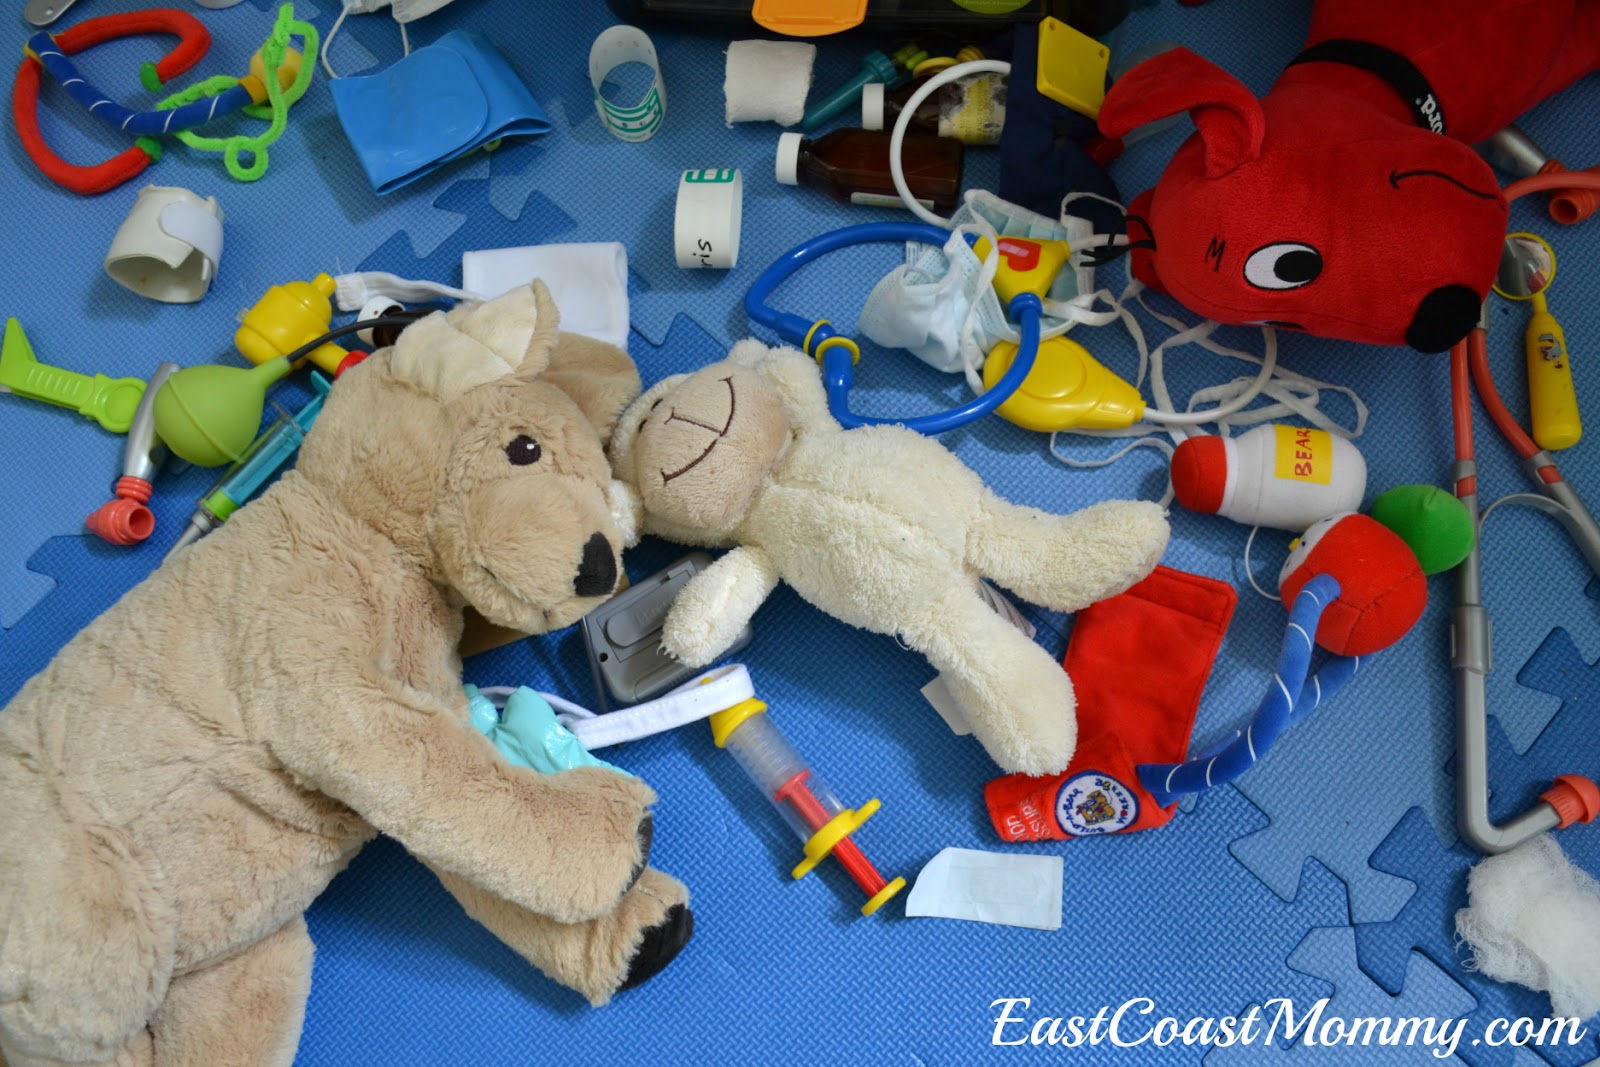 East Coast Mommy Teddy Bear Clinic Crafts And Activities